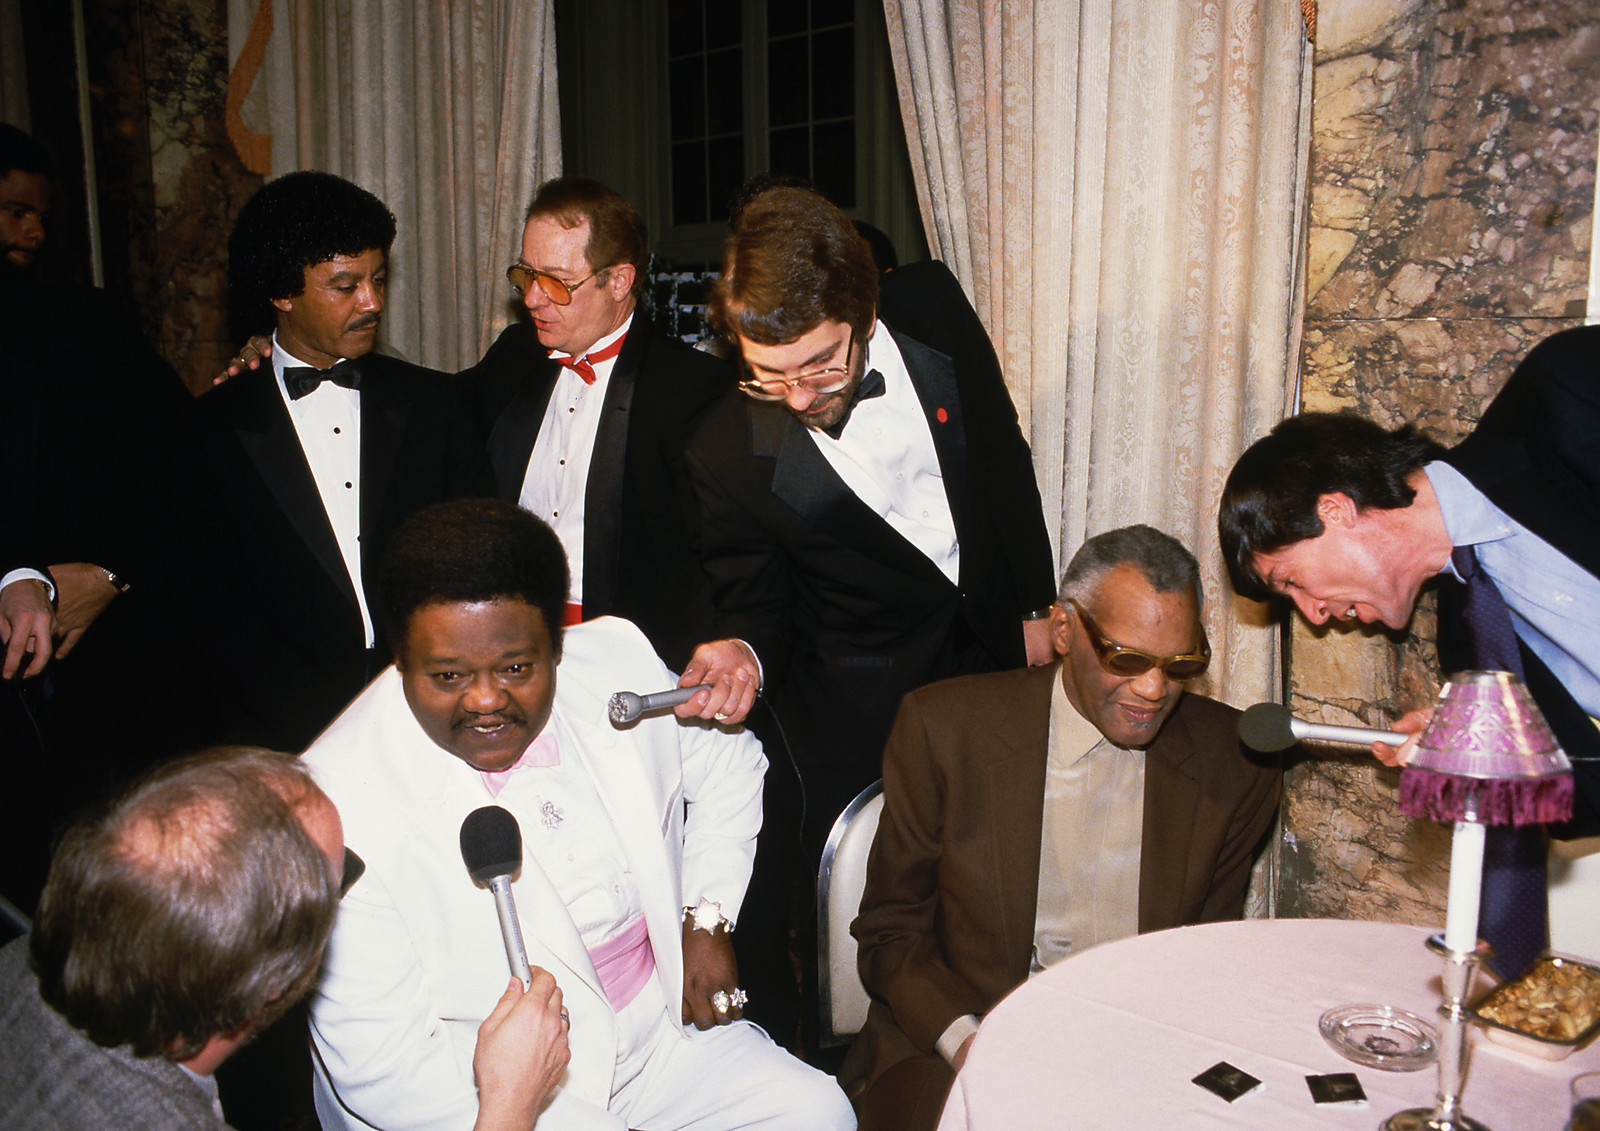 http://4.bp.blogspot.com/-NFw78PhV9F8/UP1YoDmy1xI/AAAAAAAAVFE/SAD5JlwA5ys/s1600/Event+-+Hall+of+Fame,+interviews+Fats+Domino,+Ray+Charles+-+19860123.JPG